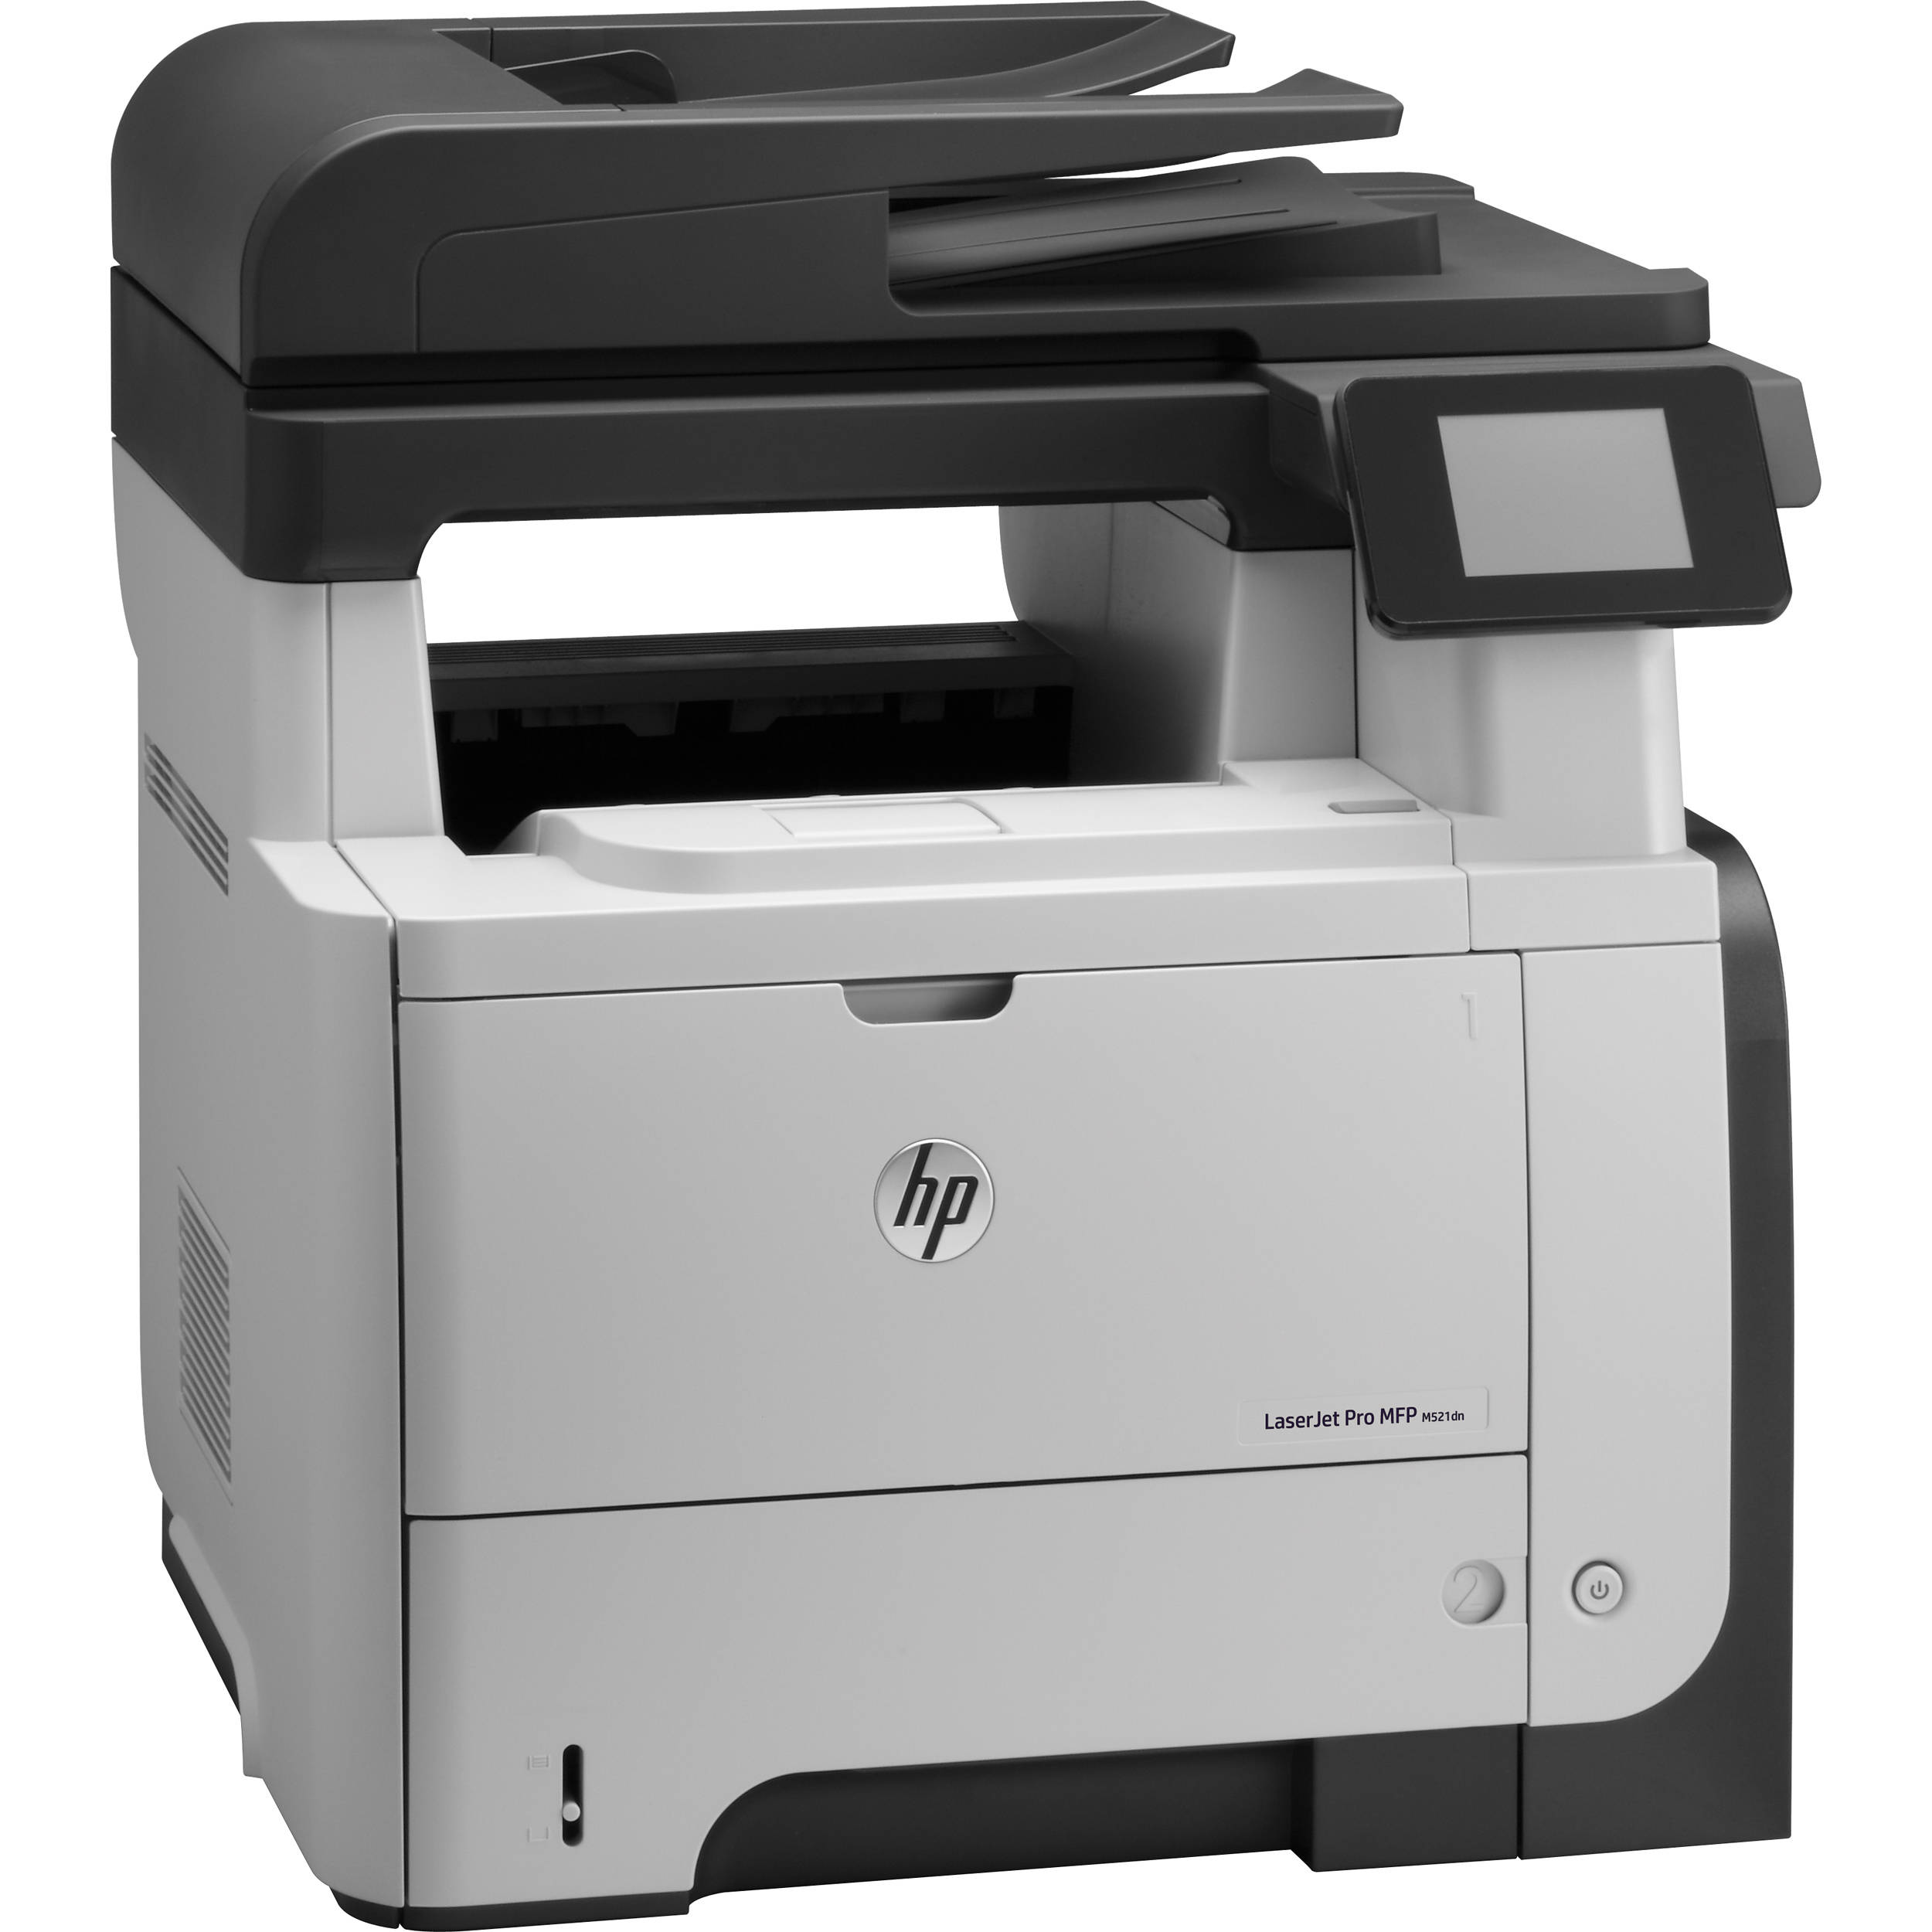 HP LaserJet Pro M521dn All-in-One Printer A8P79A#BGJ B&H Photo